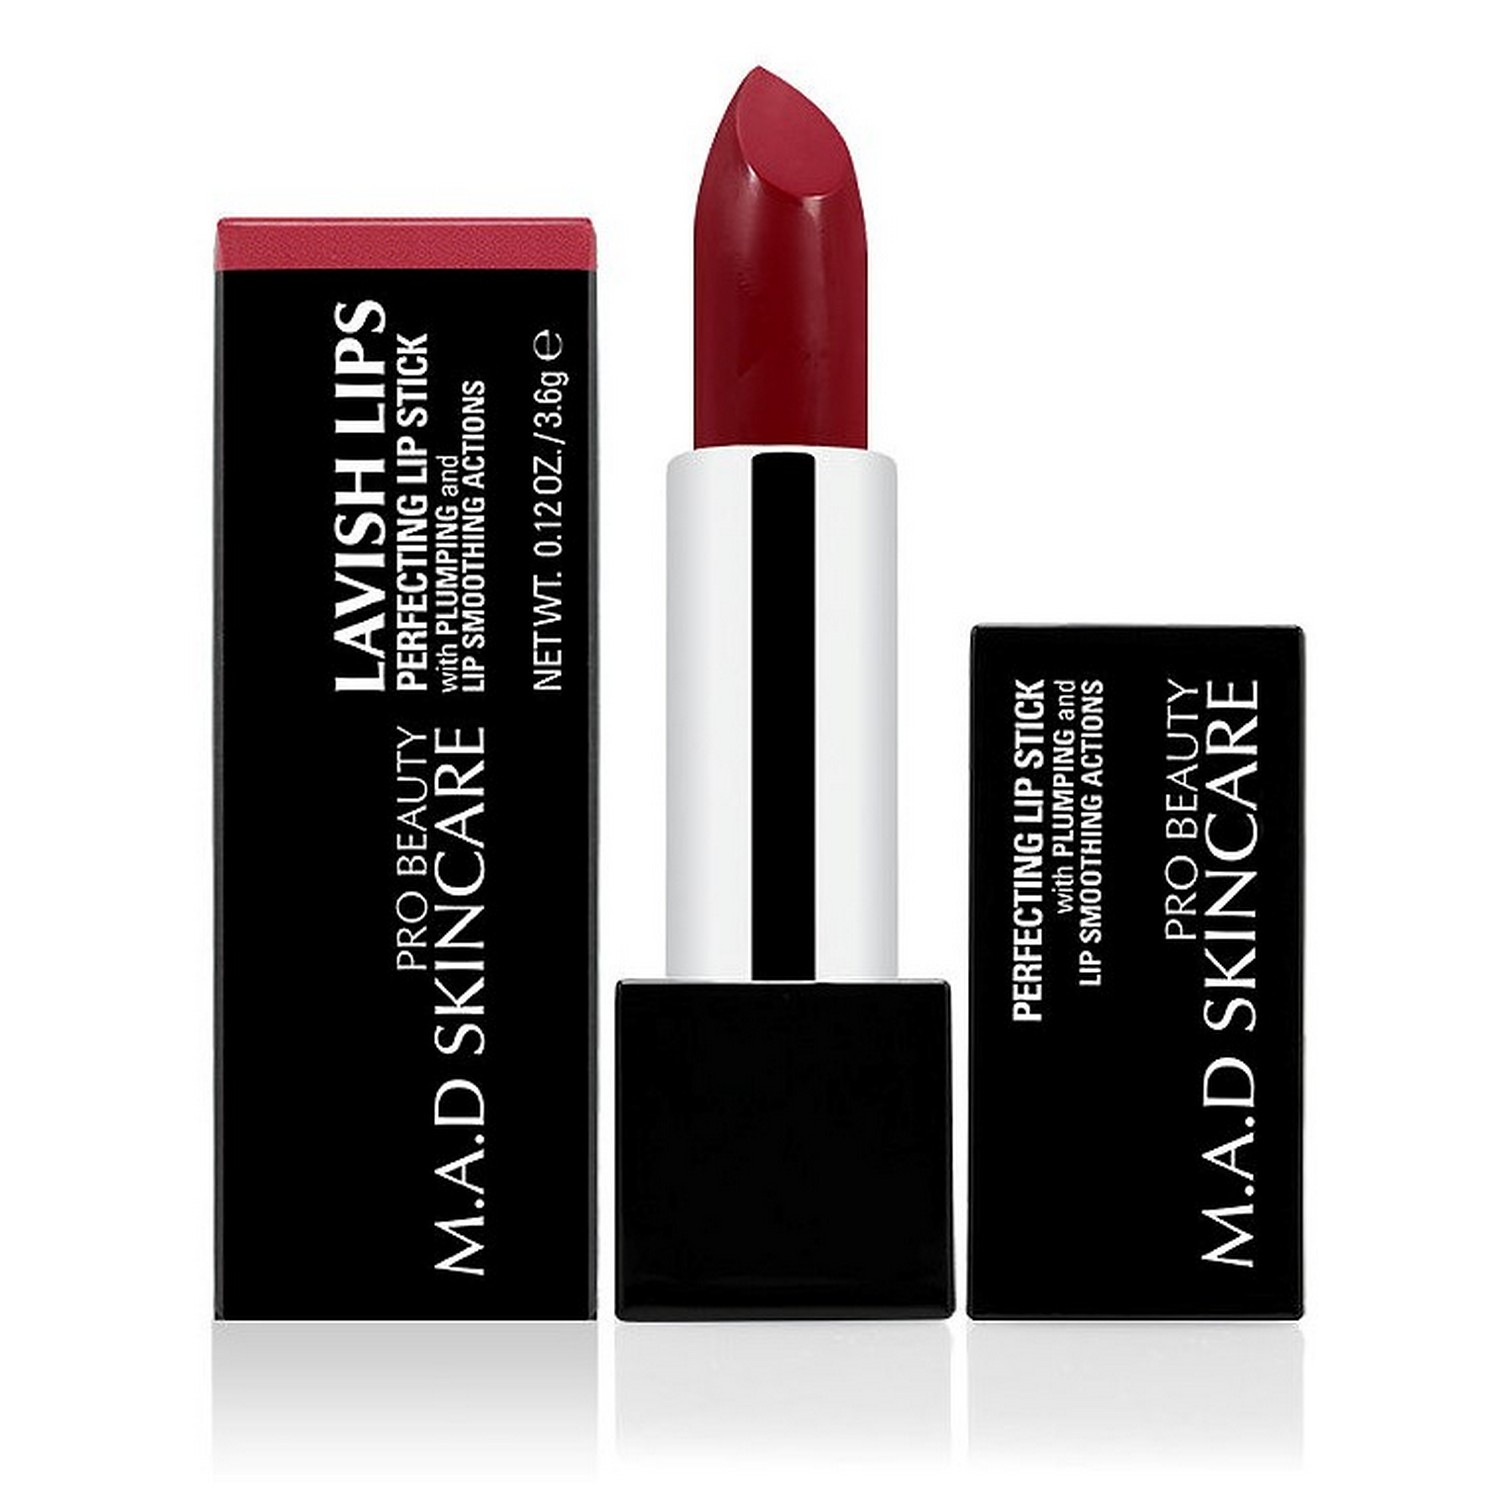 M.A.D SKINCARE LAVISH LIPS PERFECTING LIP STICK - ALLURING (0.12 oz / 3.6 g)